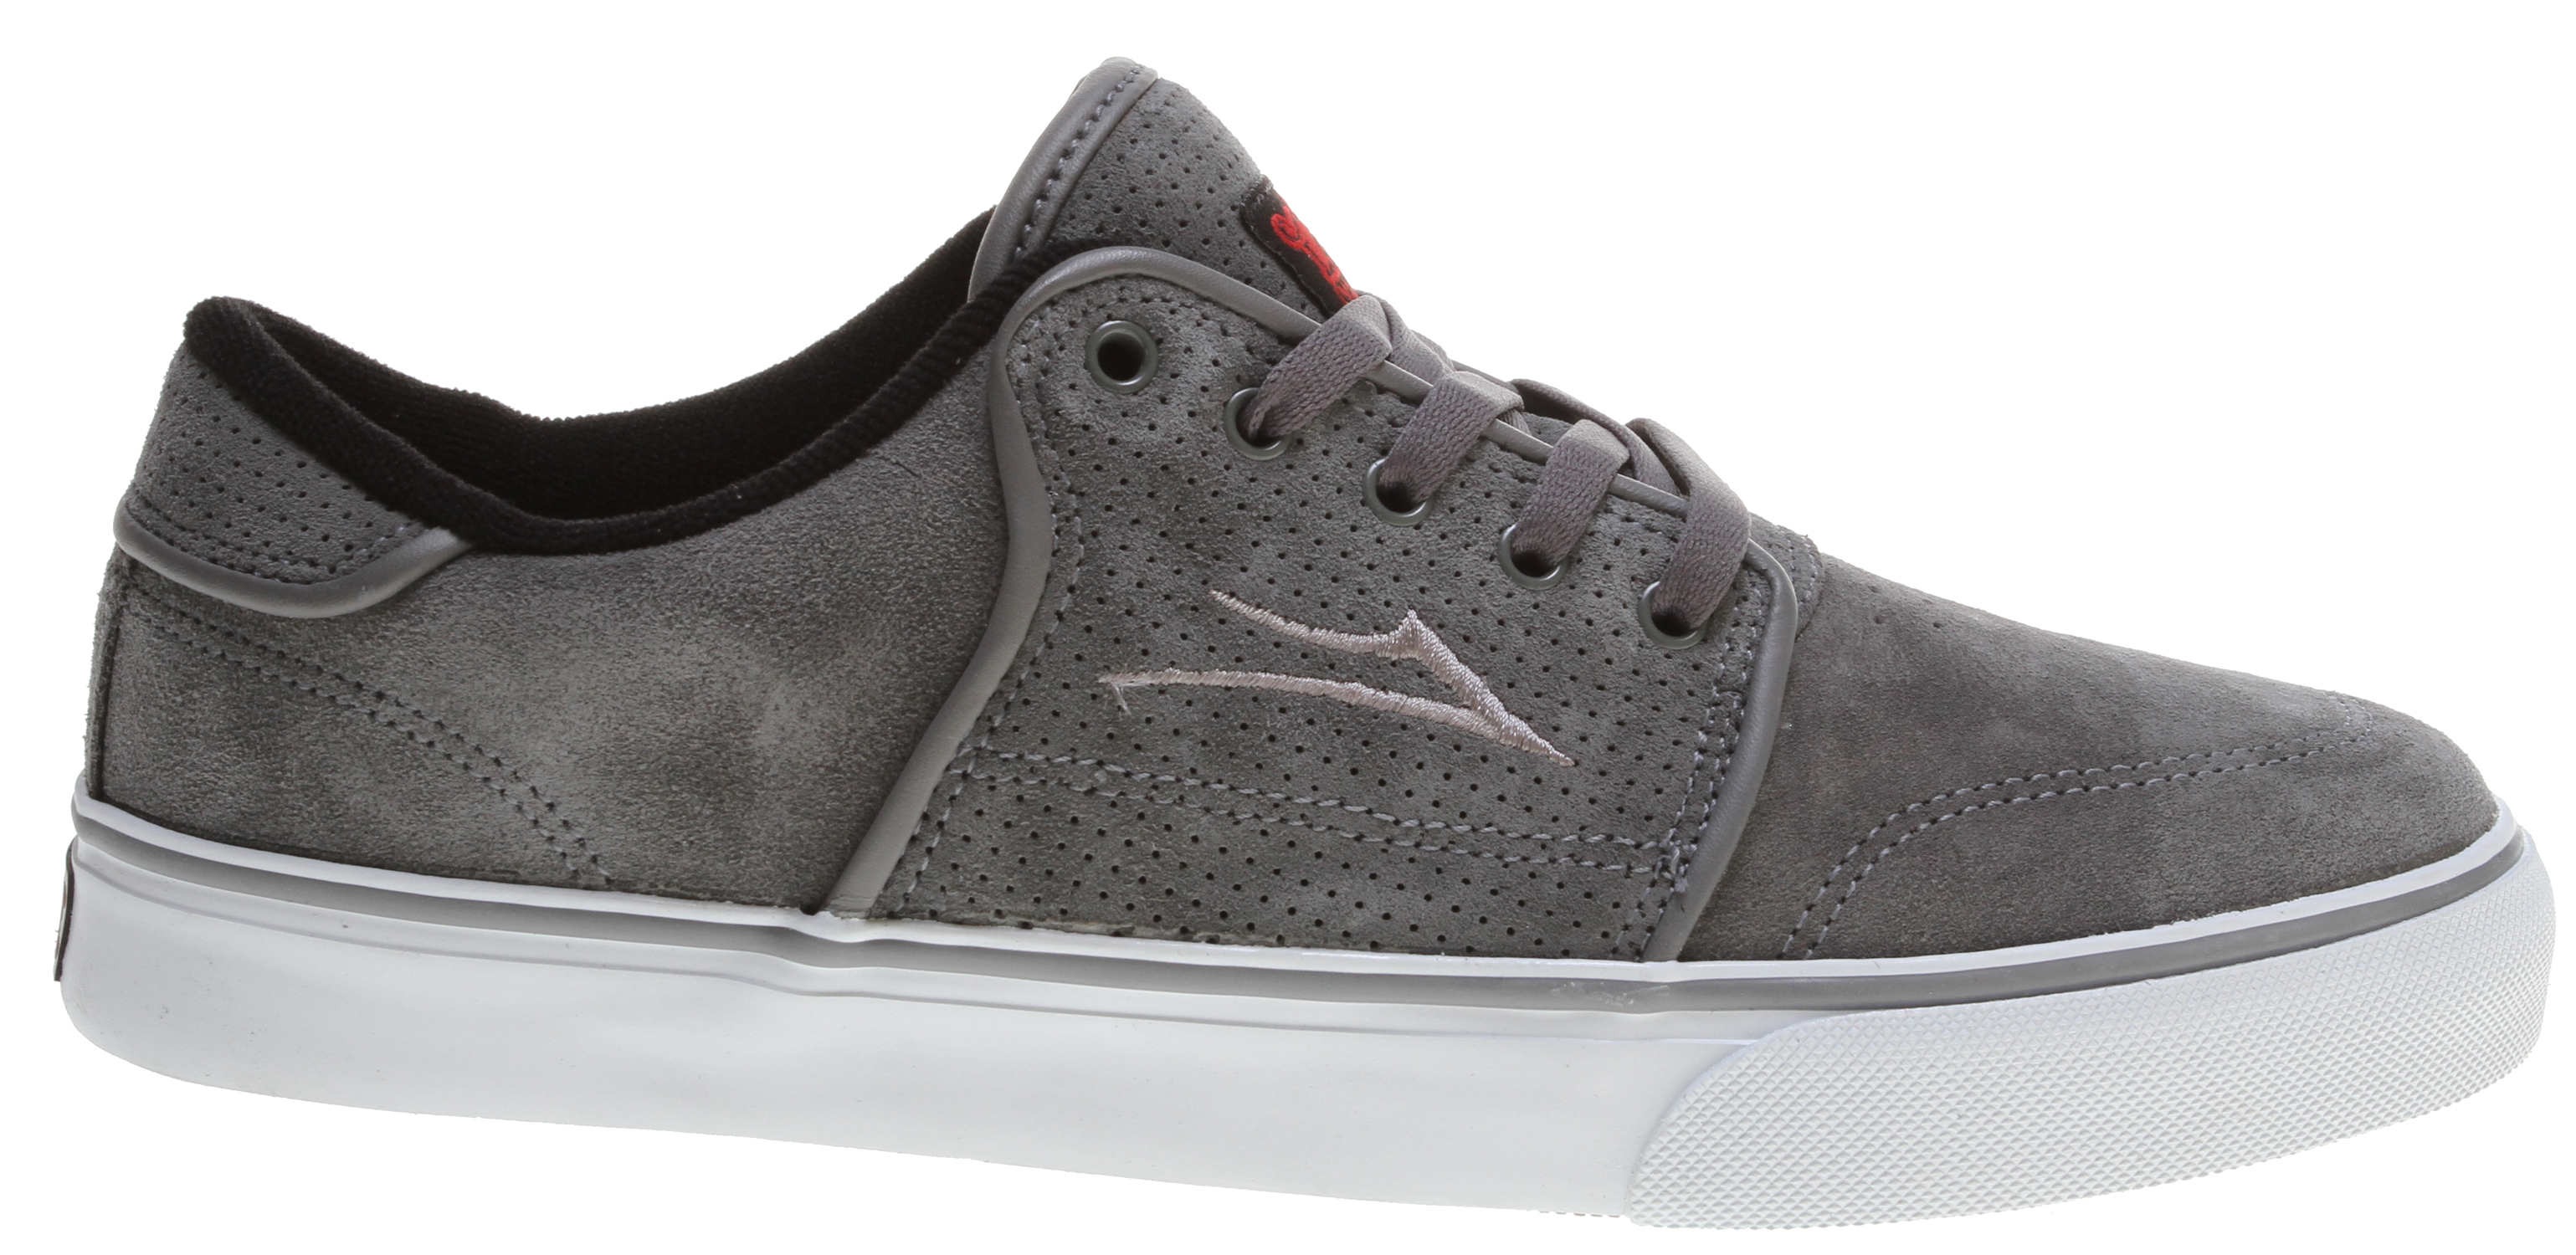 Skateboard Key Features of the Lakai Carlo Skate Shoes: Flexible Vulcanized Construction Tacky Gum Rubber Outsole Durable Suede Or Soft Leather Upper Form Fitting Upper For Increased Board Feel Full-Length Shock Absorbing Insole Performance Tested And Approved By The Lakai Team - $42.95